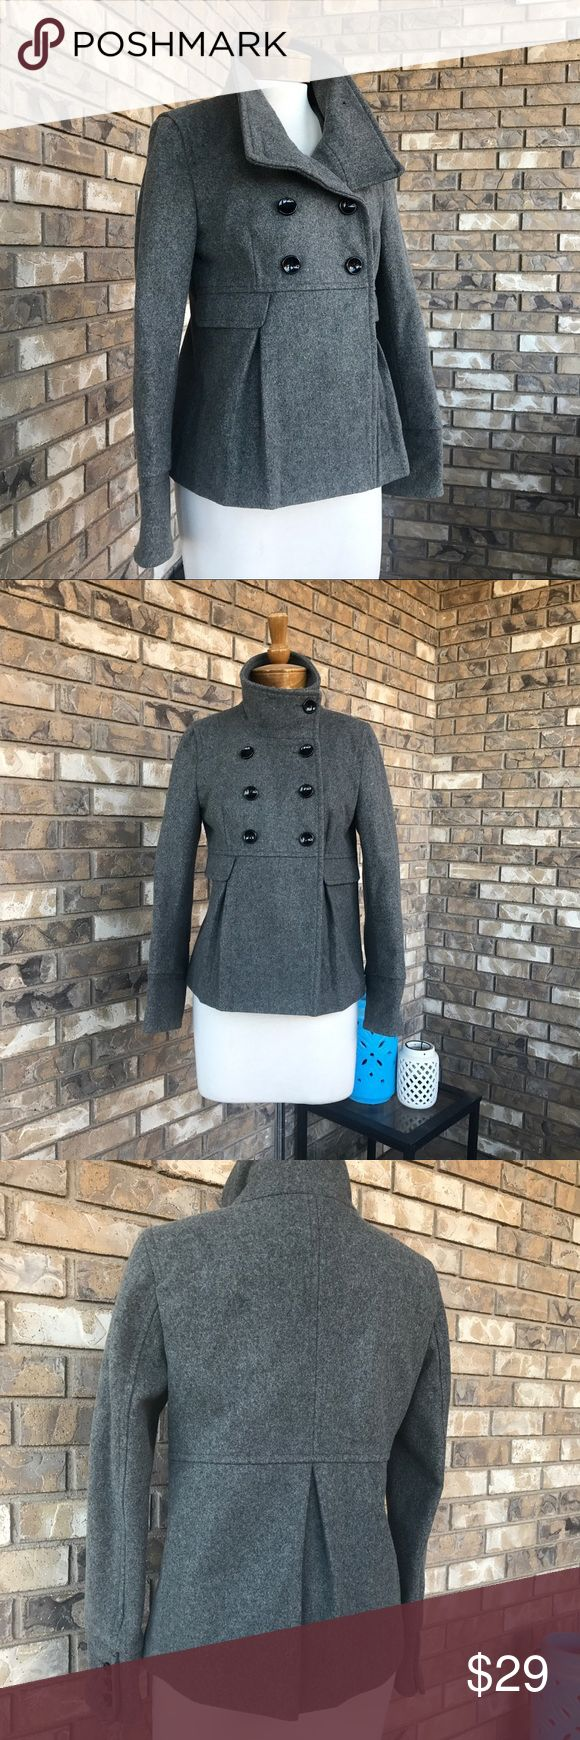 Old Navy Wool Pea Coat M Old Navy grey Pea coat with 70% wool... super warm.  Completely lined.  Pockets.  Neckline can be worn High or folded over.   Tailored fit.  Super cute back.  Worn just a few times.  Women's size Medium. Old Navy Jackets & Coats Pea Coats